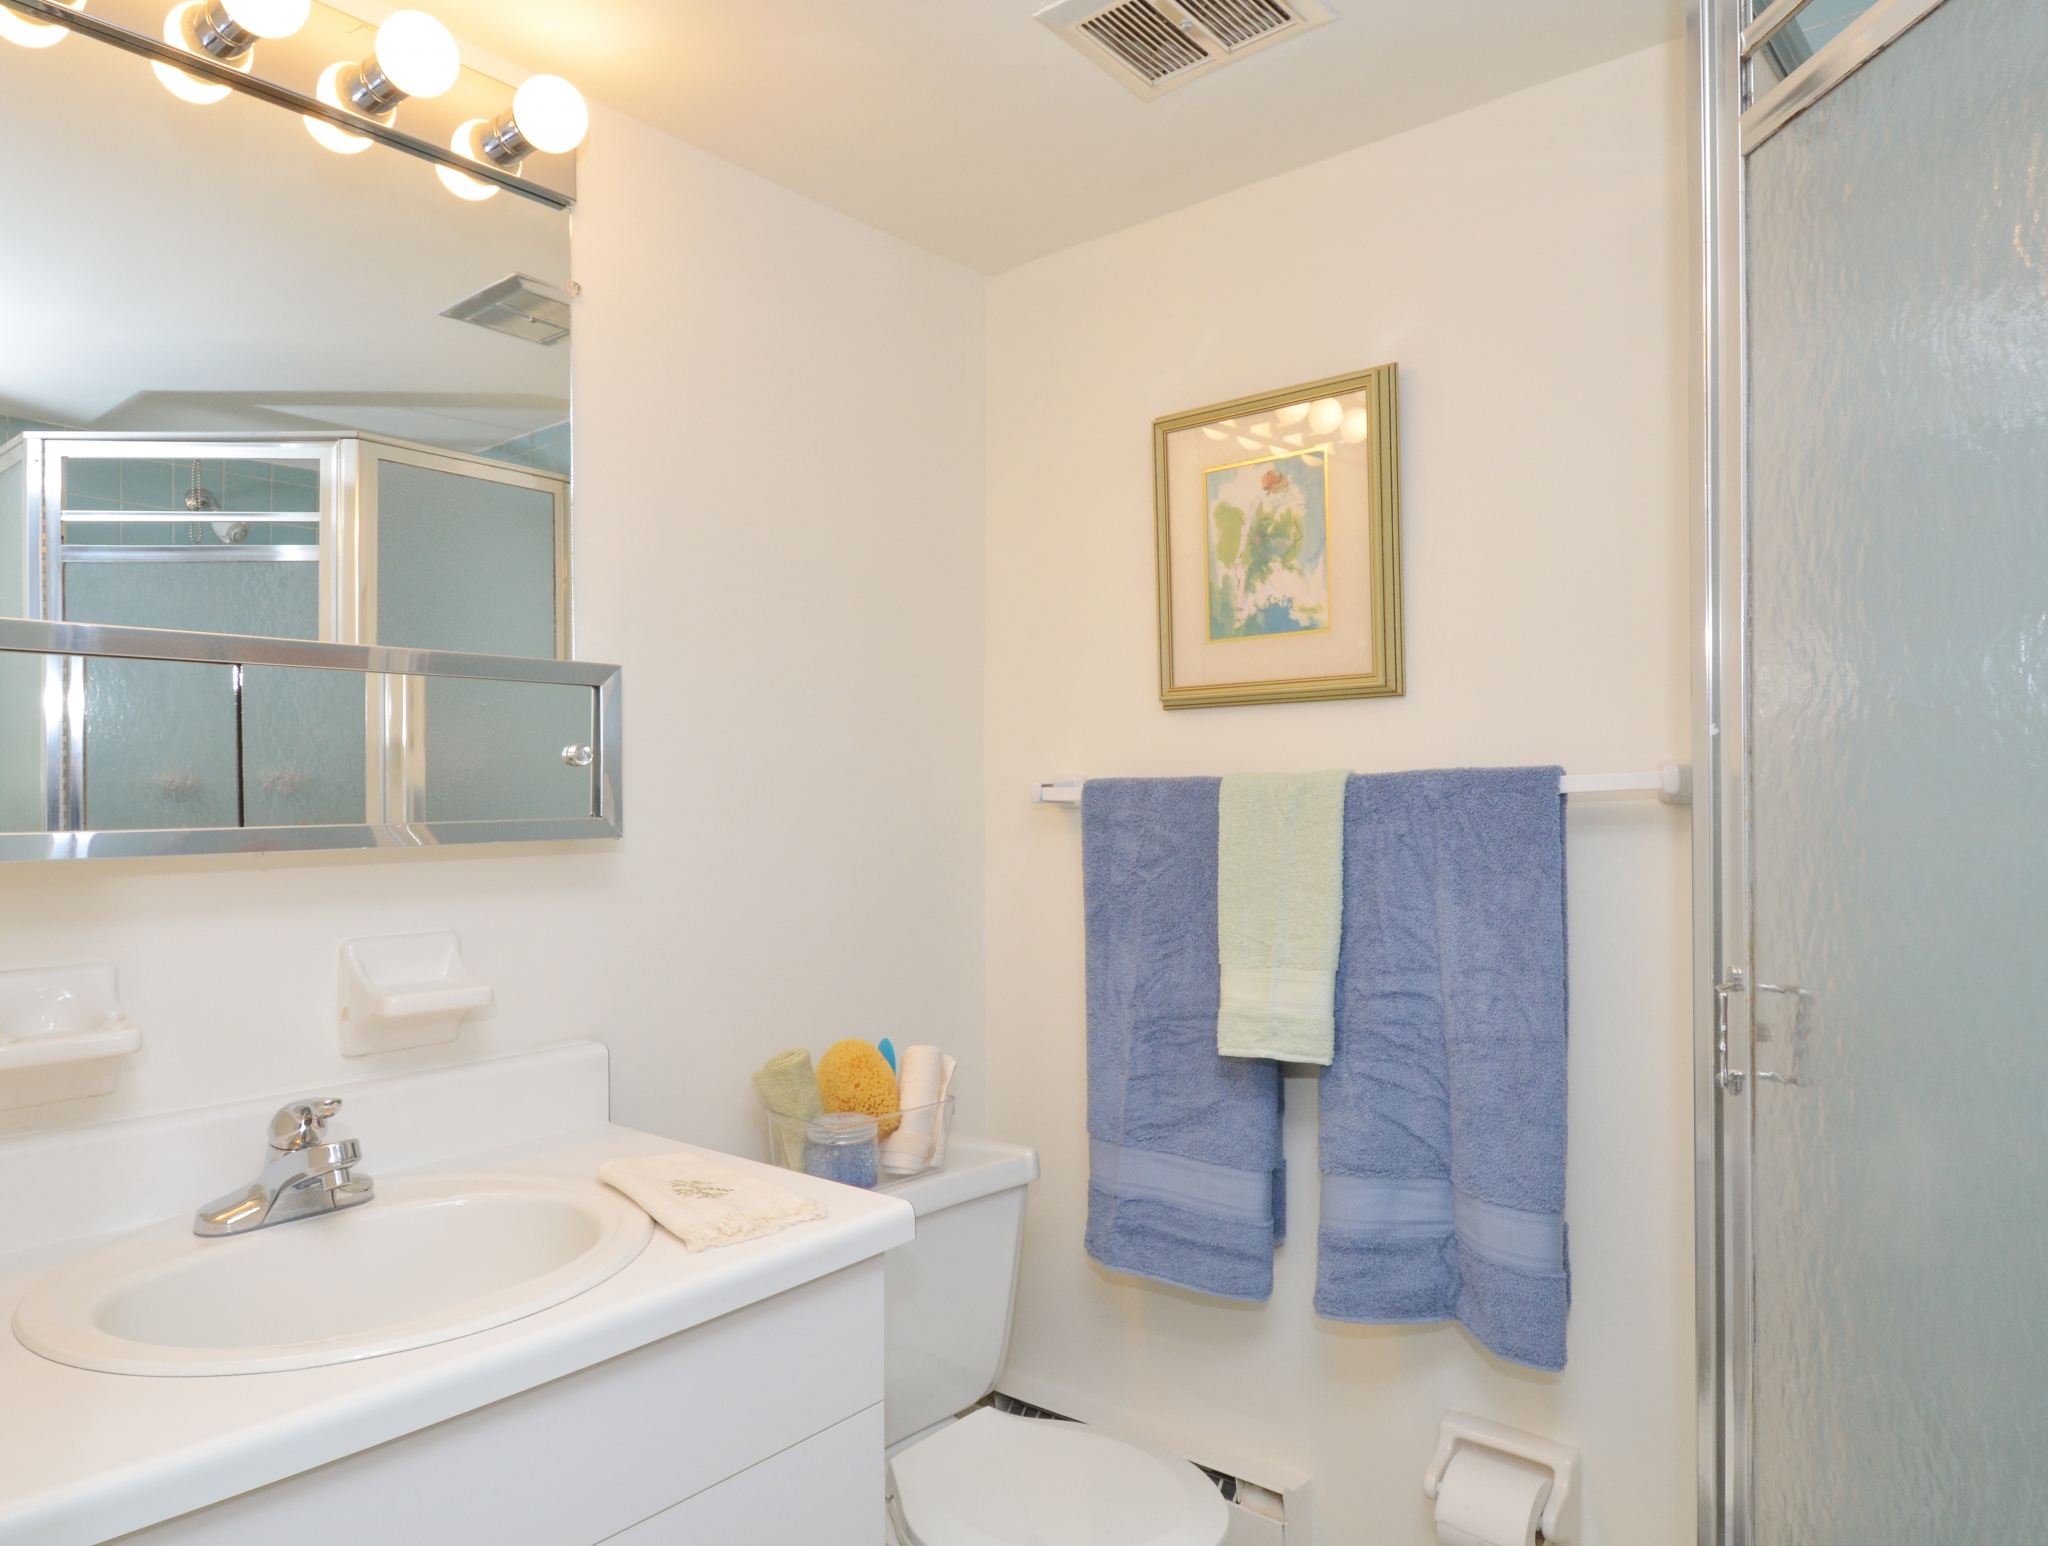 Spacious Master Bathroom | Apartments Homes for rent in Downingtown, PA | Norwood House Apartments